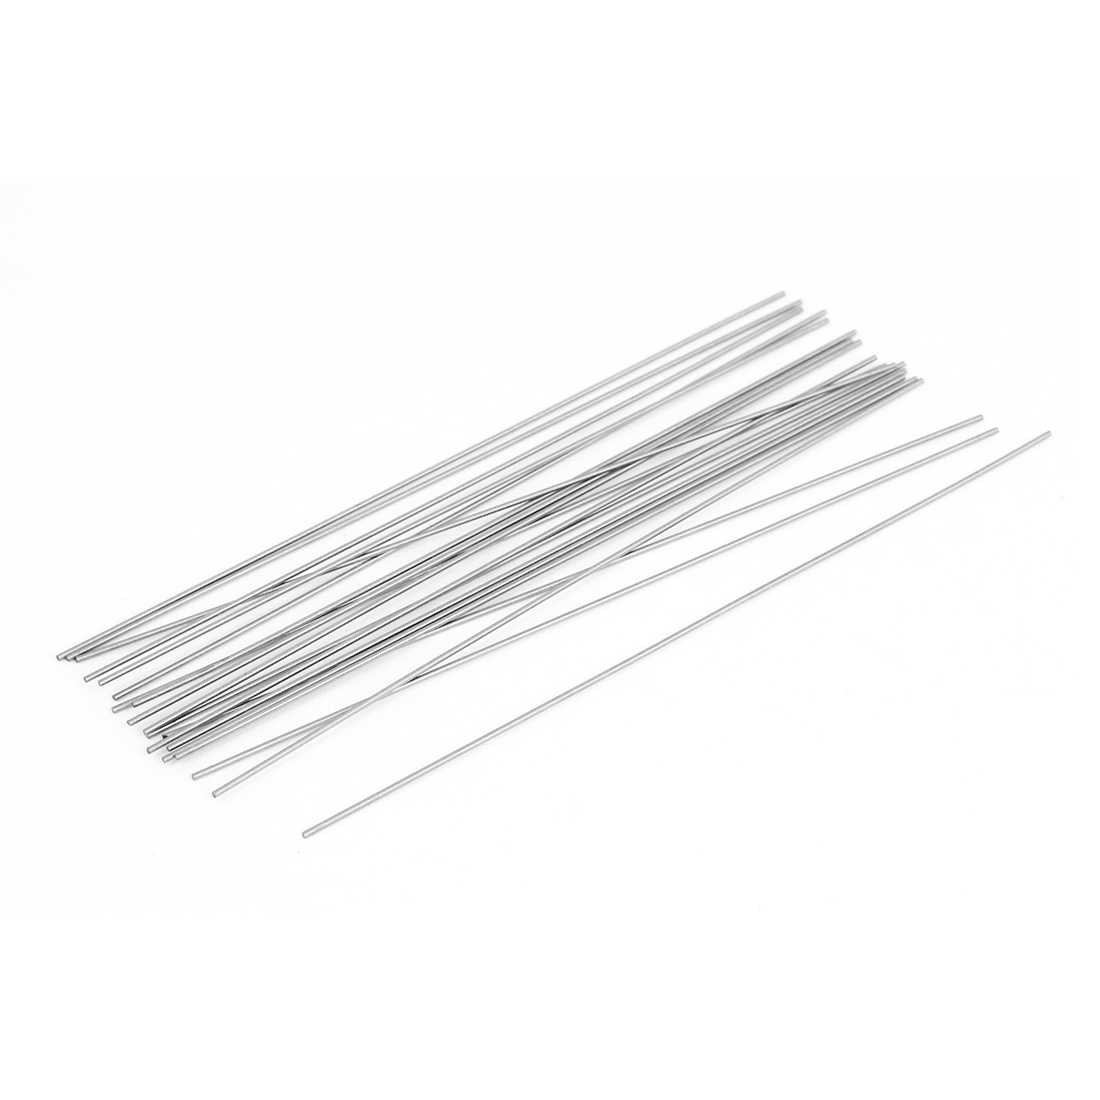 20 Pcs 100mmx0.7mm Steel Turning Tool Lathe Bars Round Stock Silver Tone